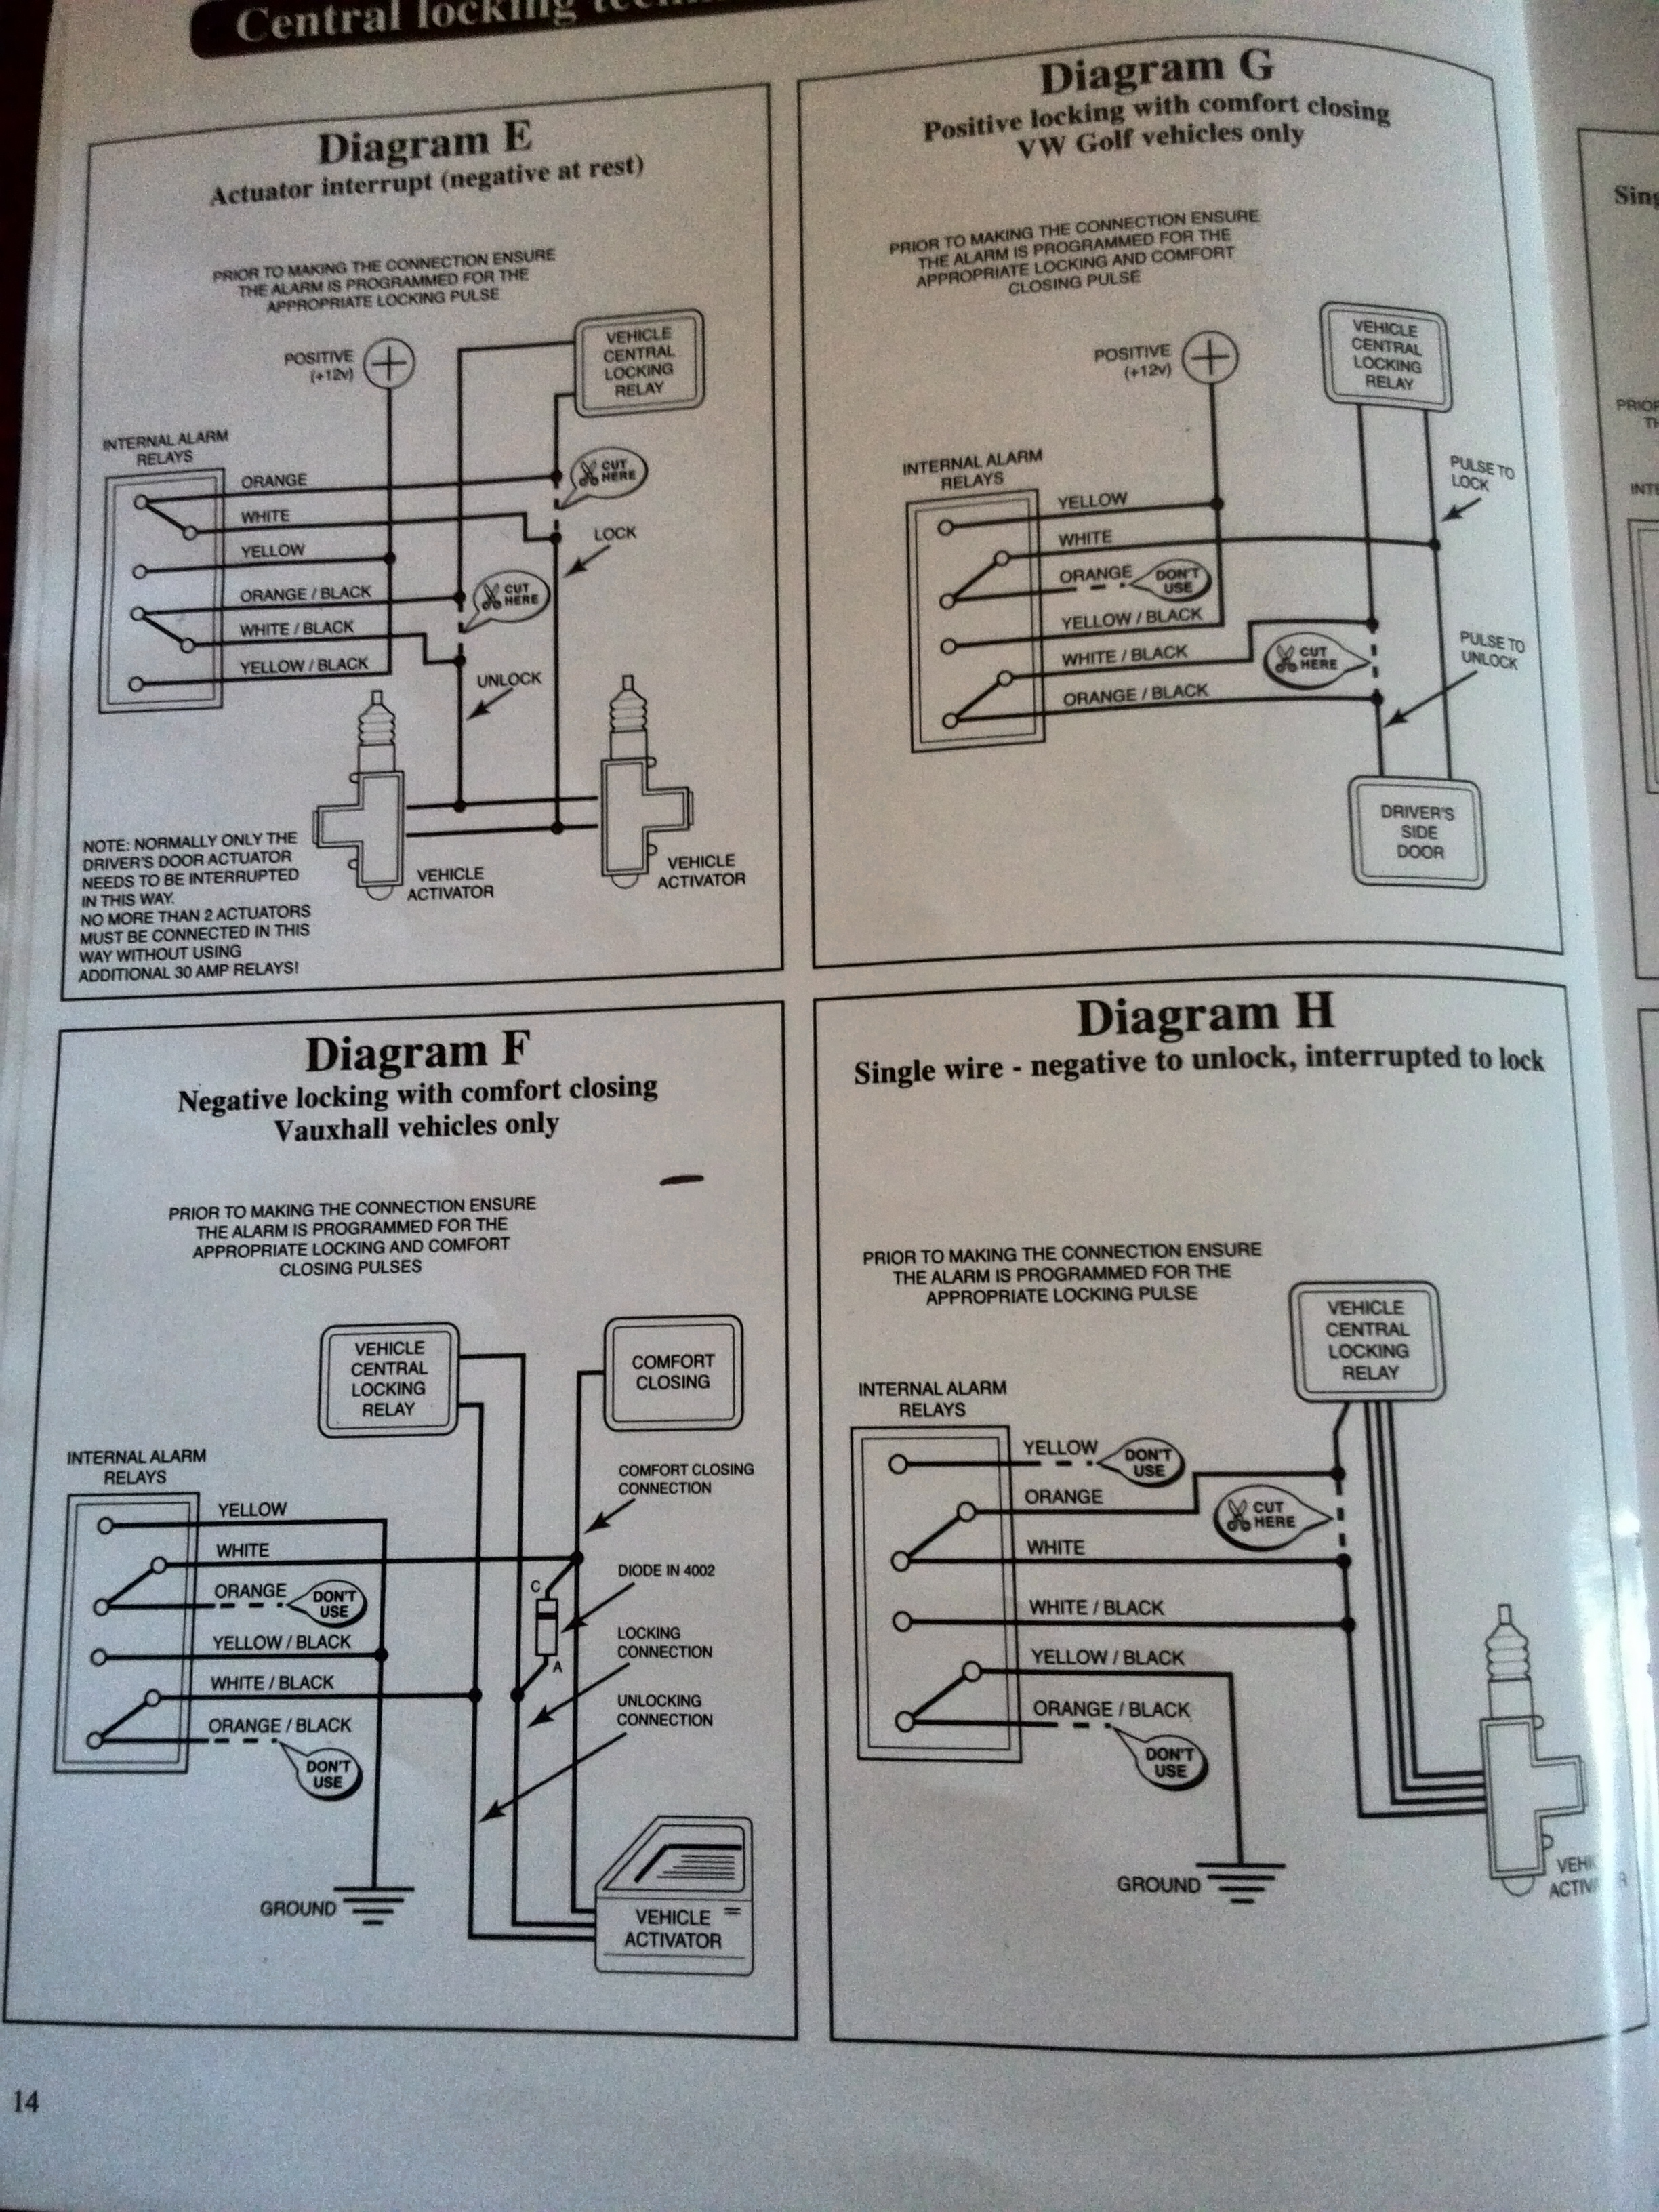 Renault Clio Iii Wiring Diagram 2 Library Help Needed Determining Ii Central Locking Pic Zm6hj4f